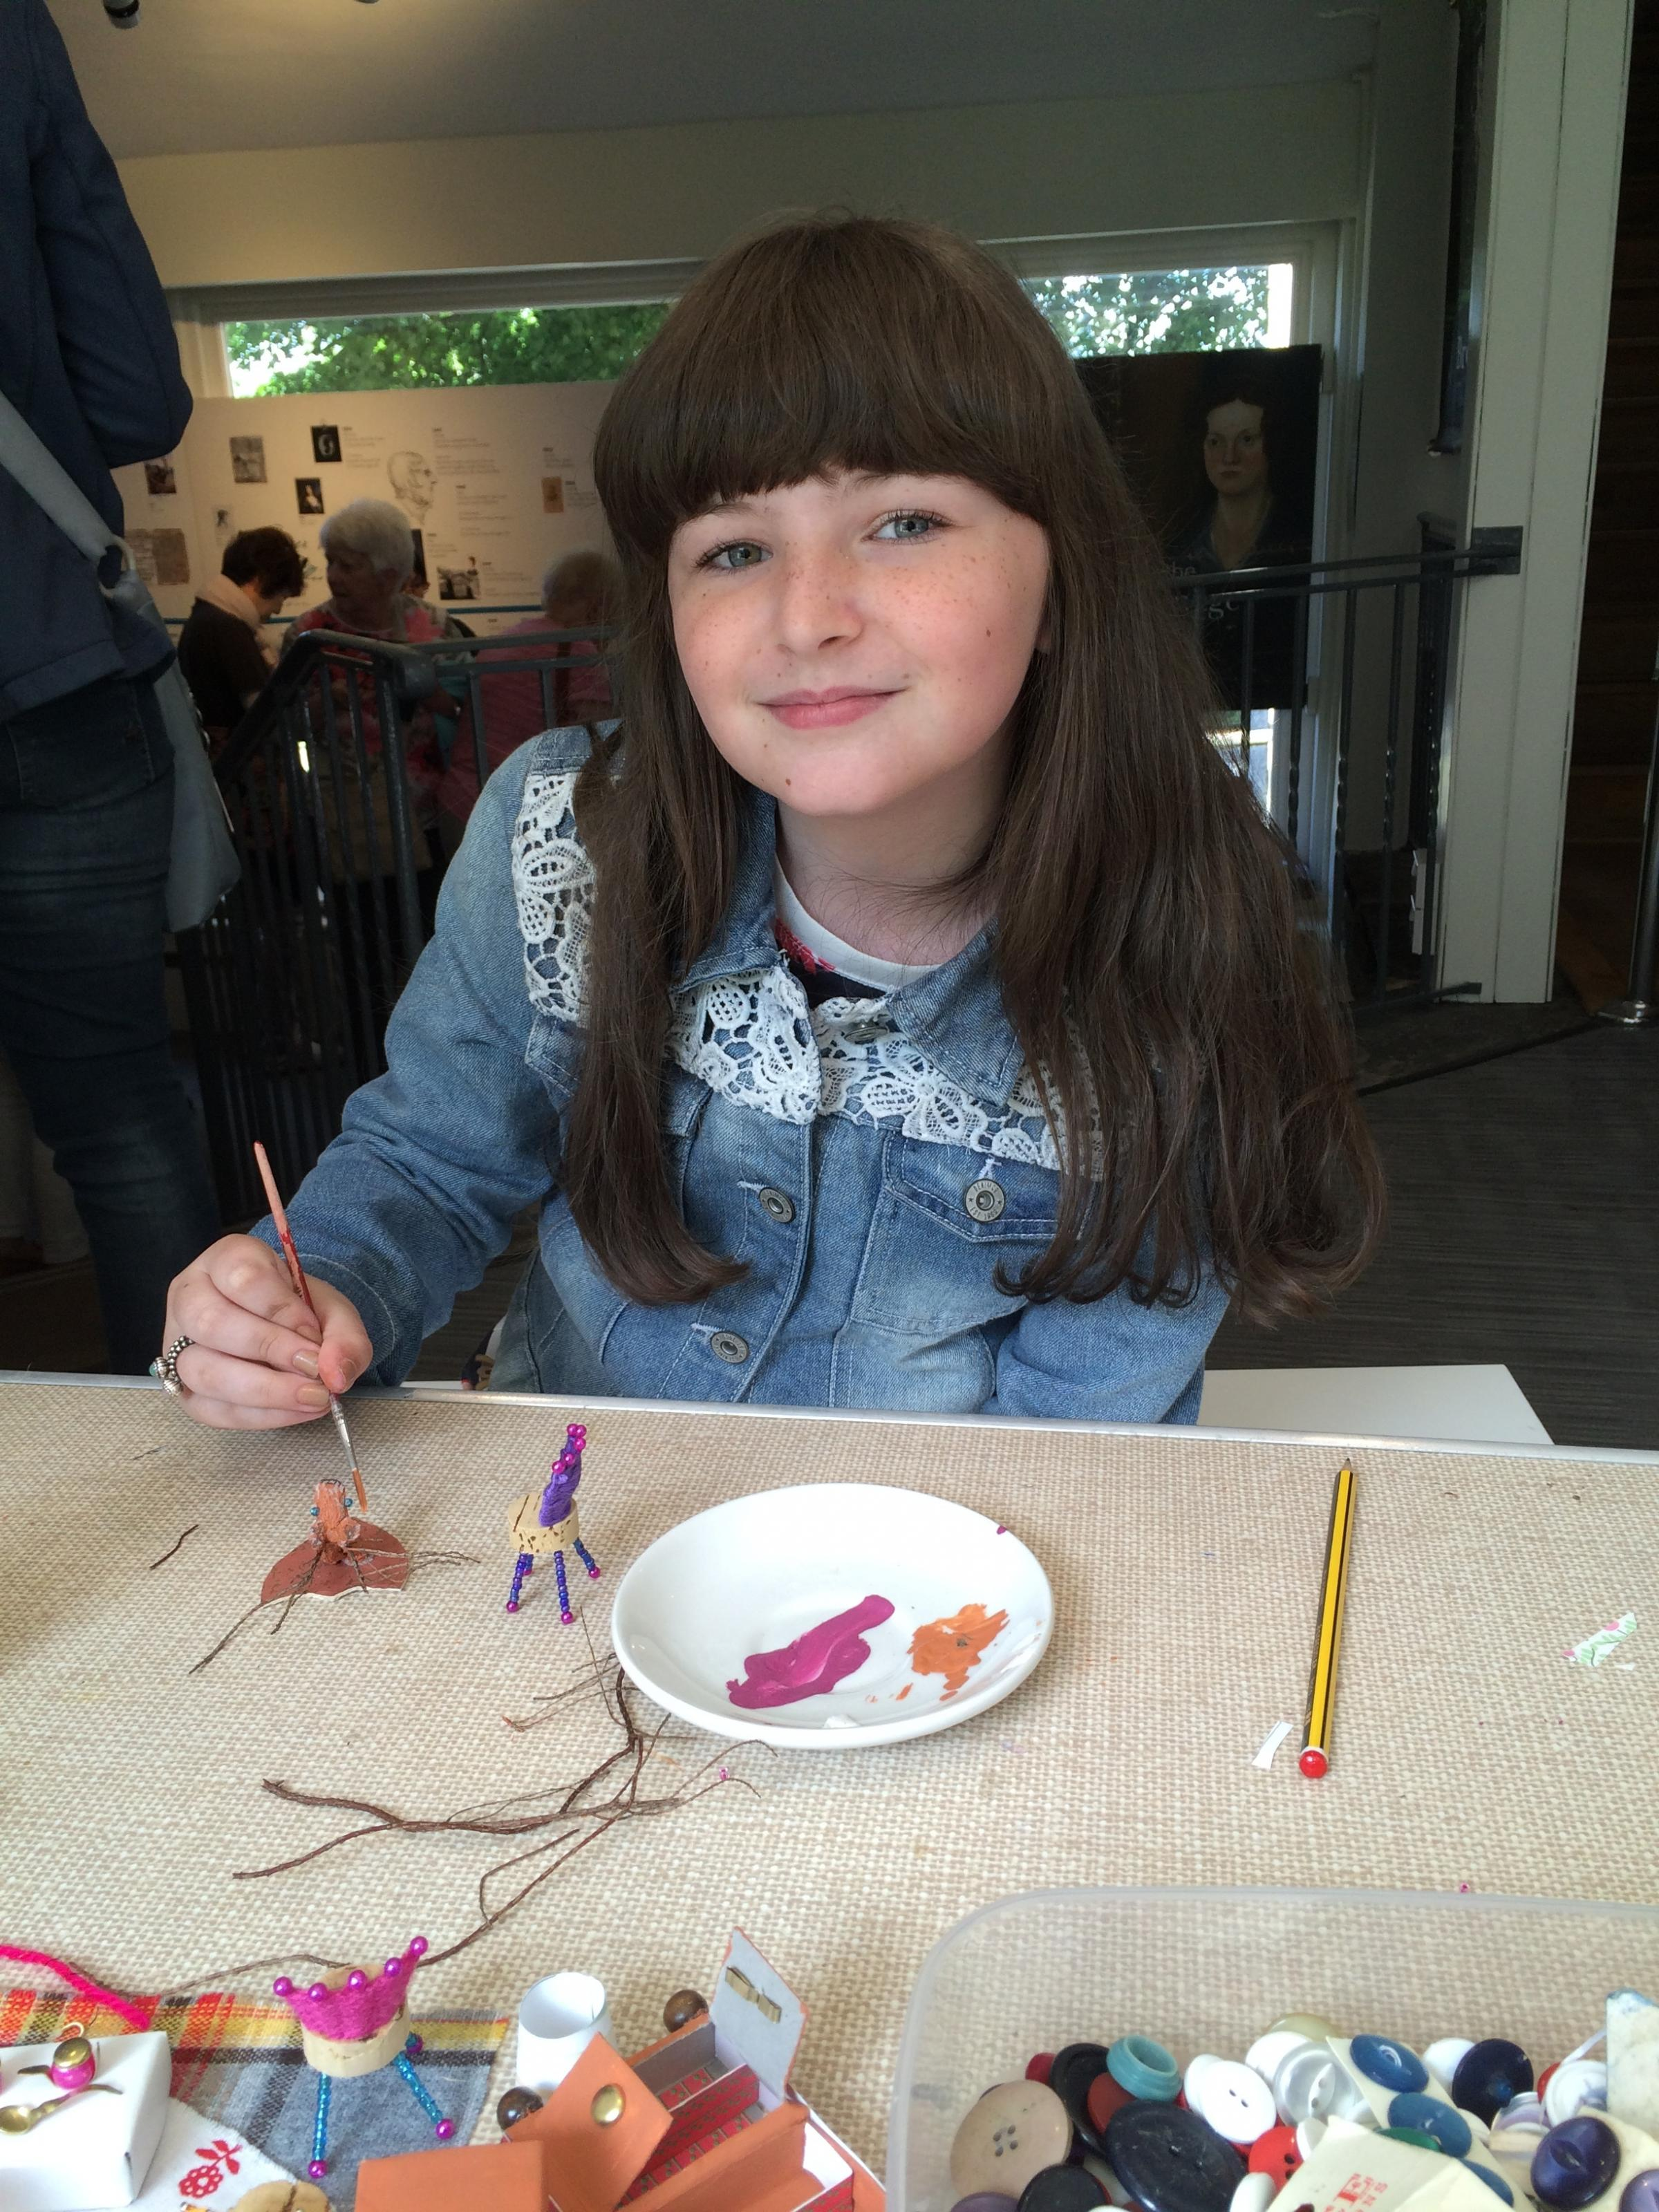 Amelia Kerr, a young visitor to the Brontë Parsonage Museum in Haworth, who took part in a previous Wild Wednesdays workshop